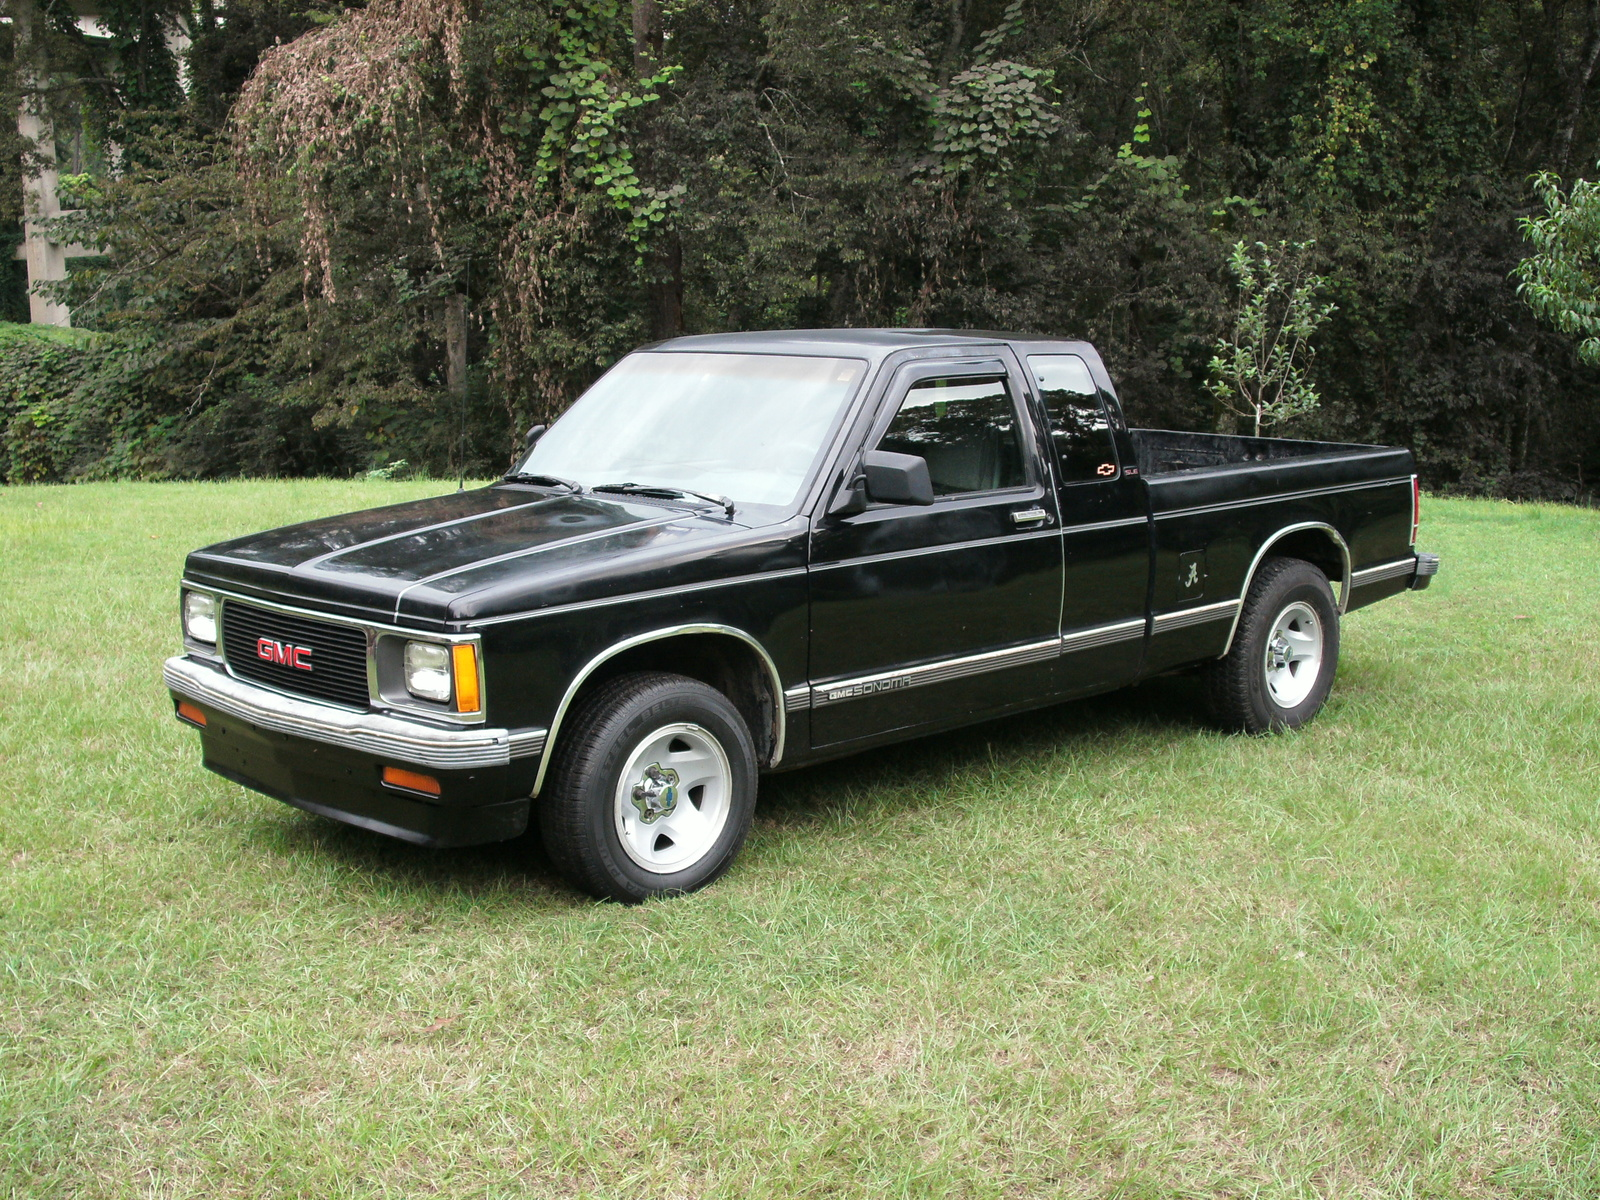 91 s10 chevy truck extended cab for sale autos post. Black Bedroom Furniture Sets. Home Design Ideas